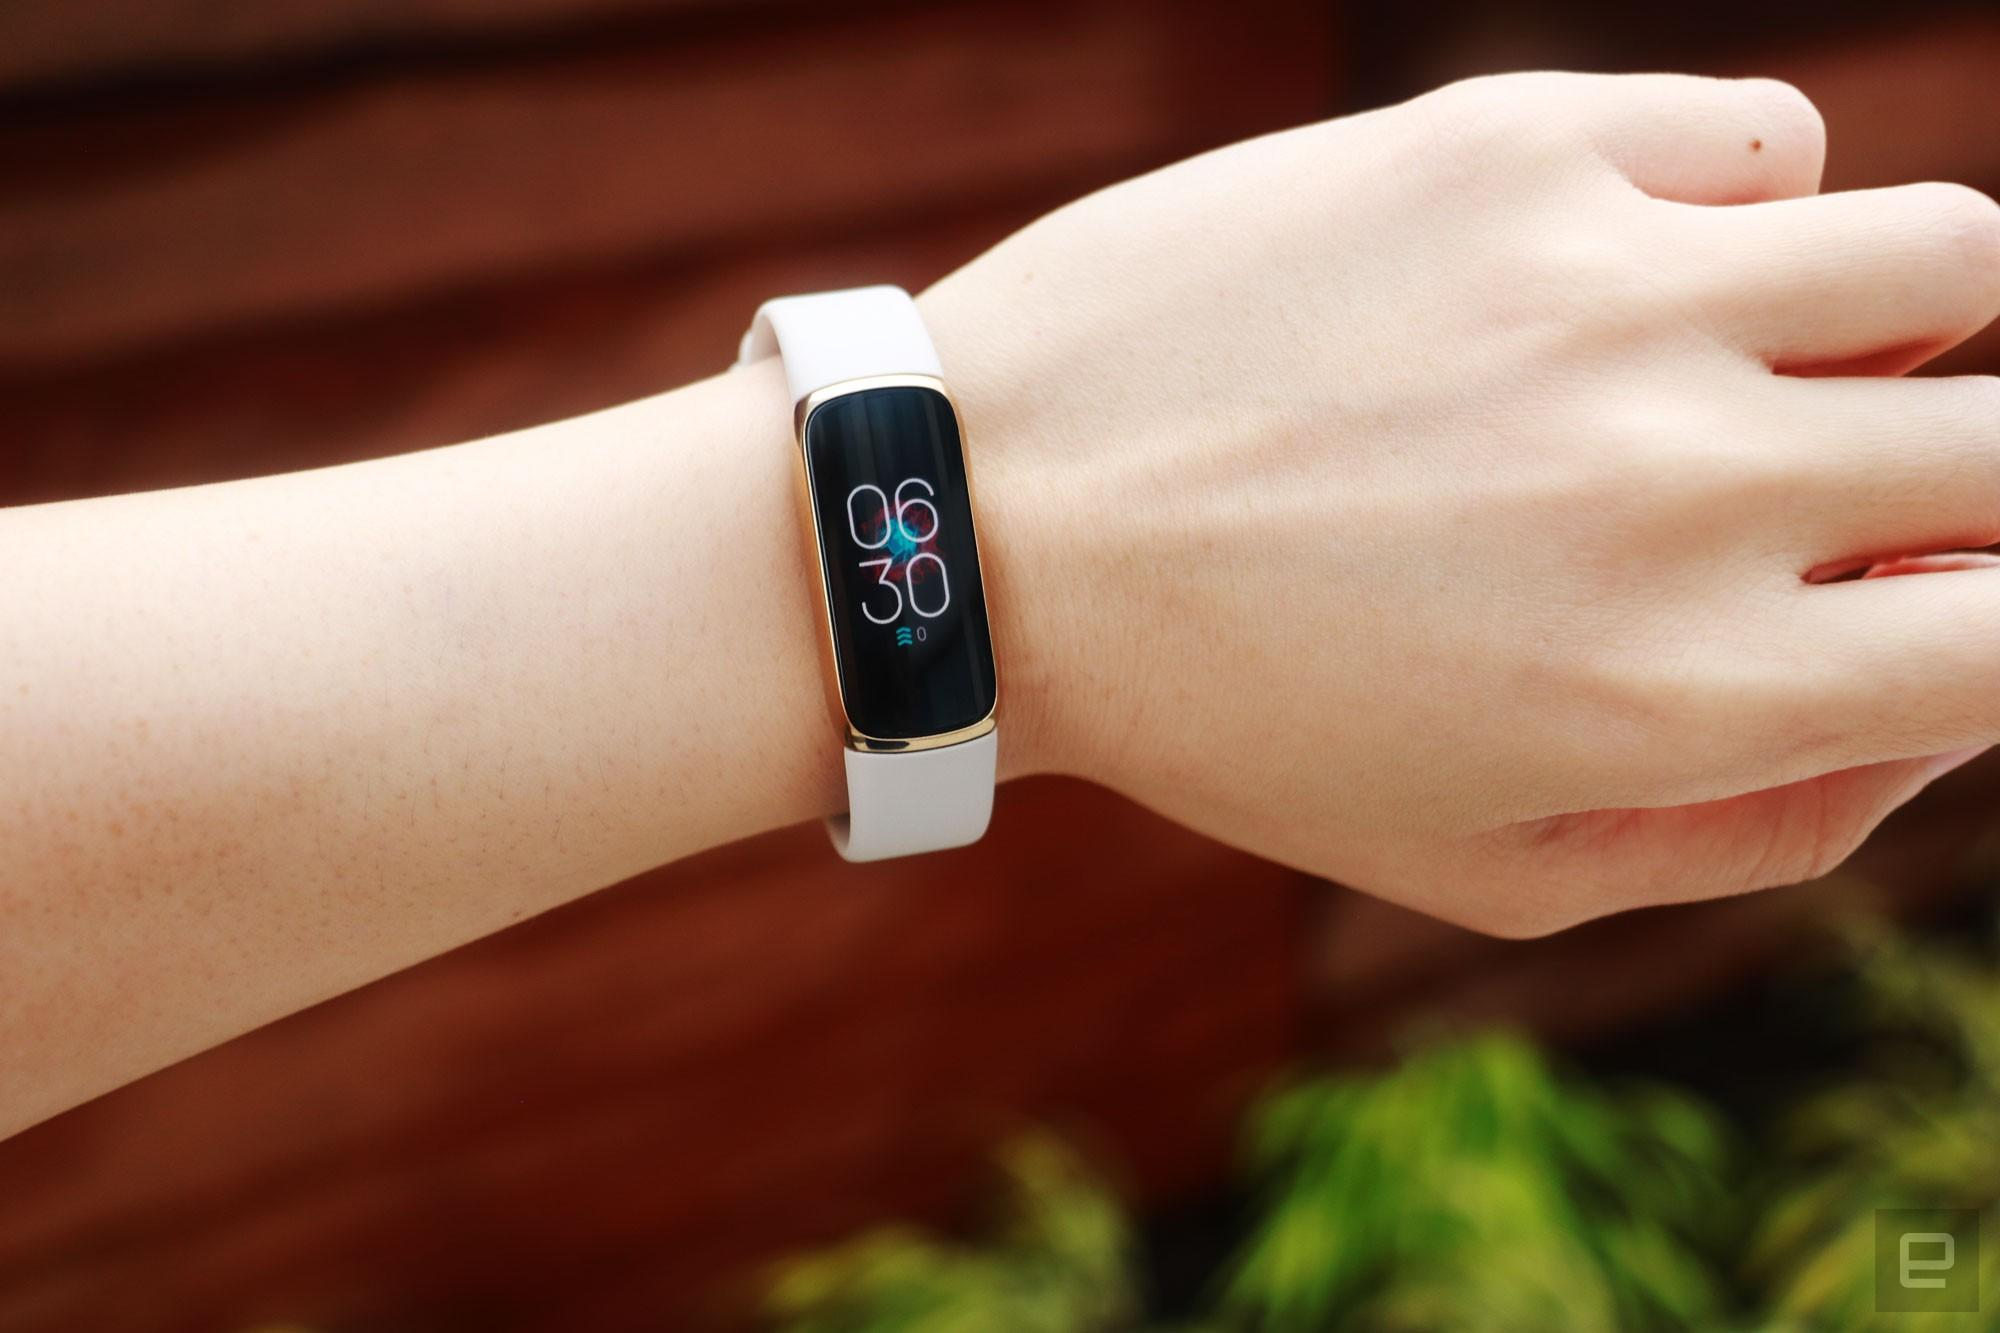 Front view of the Fitbit Luxe with a light pink silicone band on a wrist against a dark brown background with some greenery. The screen shows the time is 6:30pm.